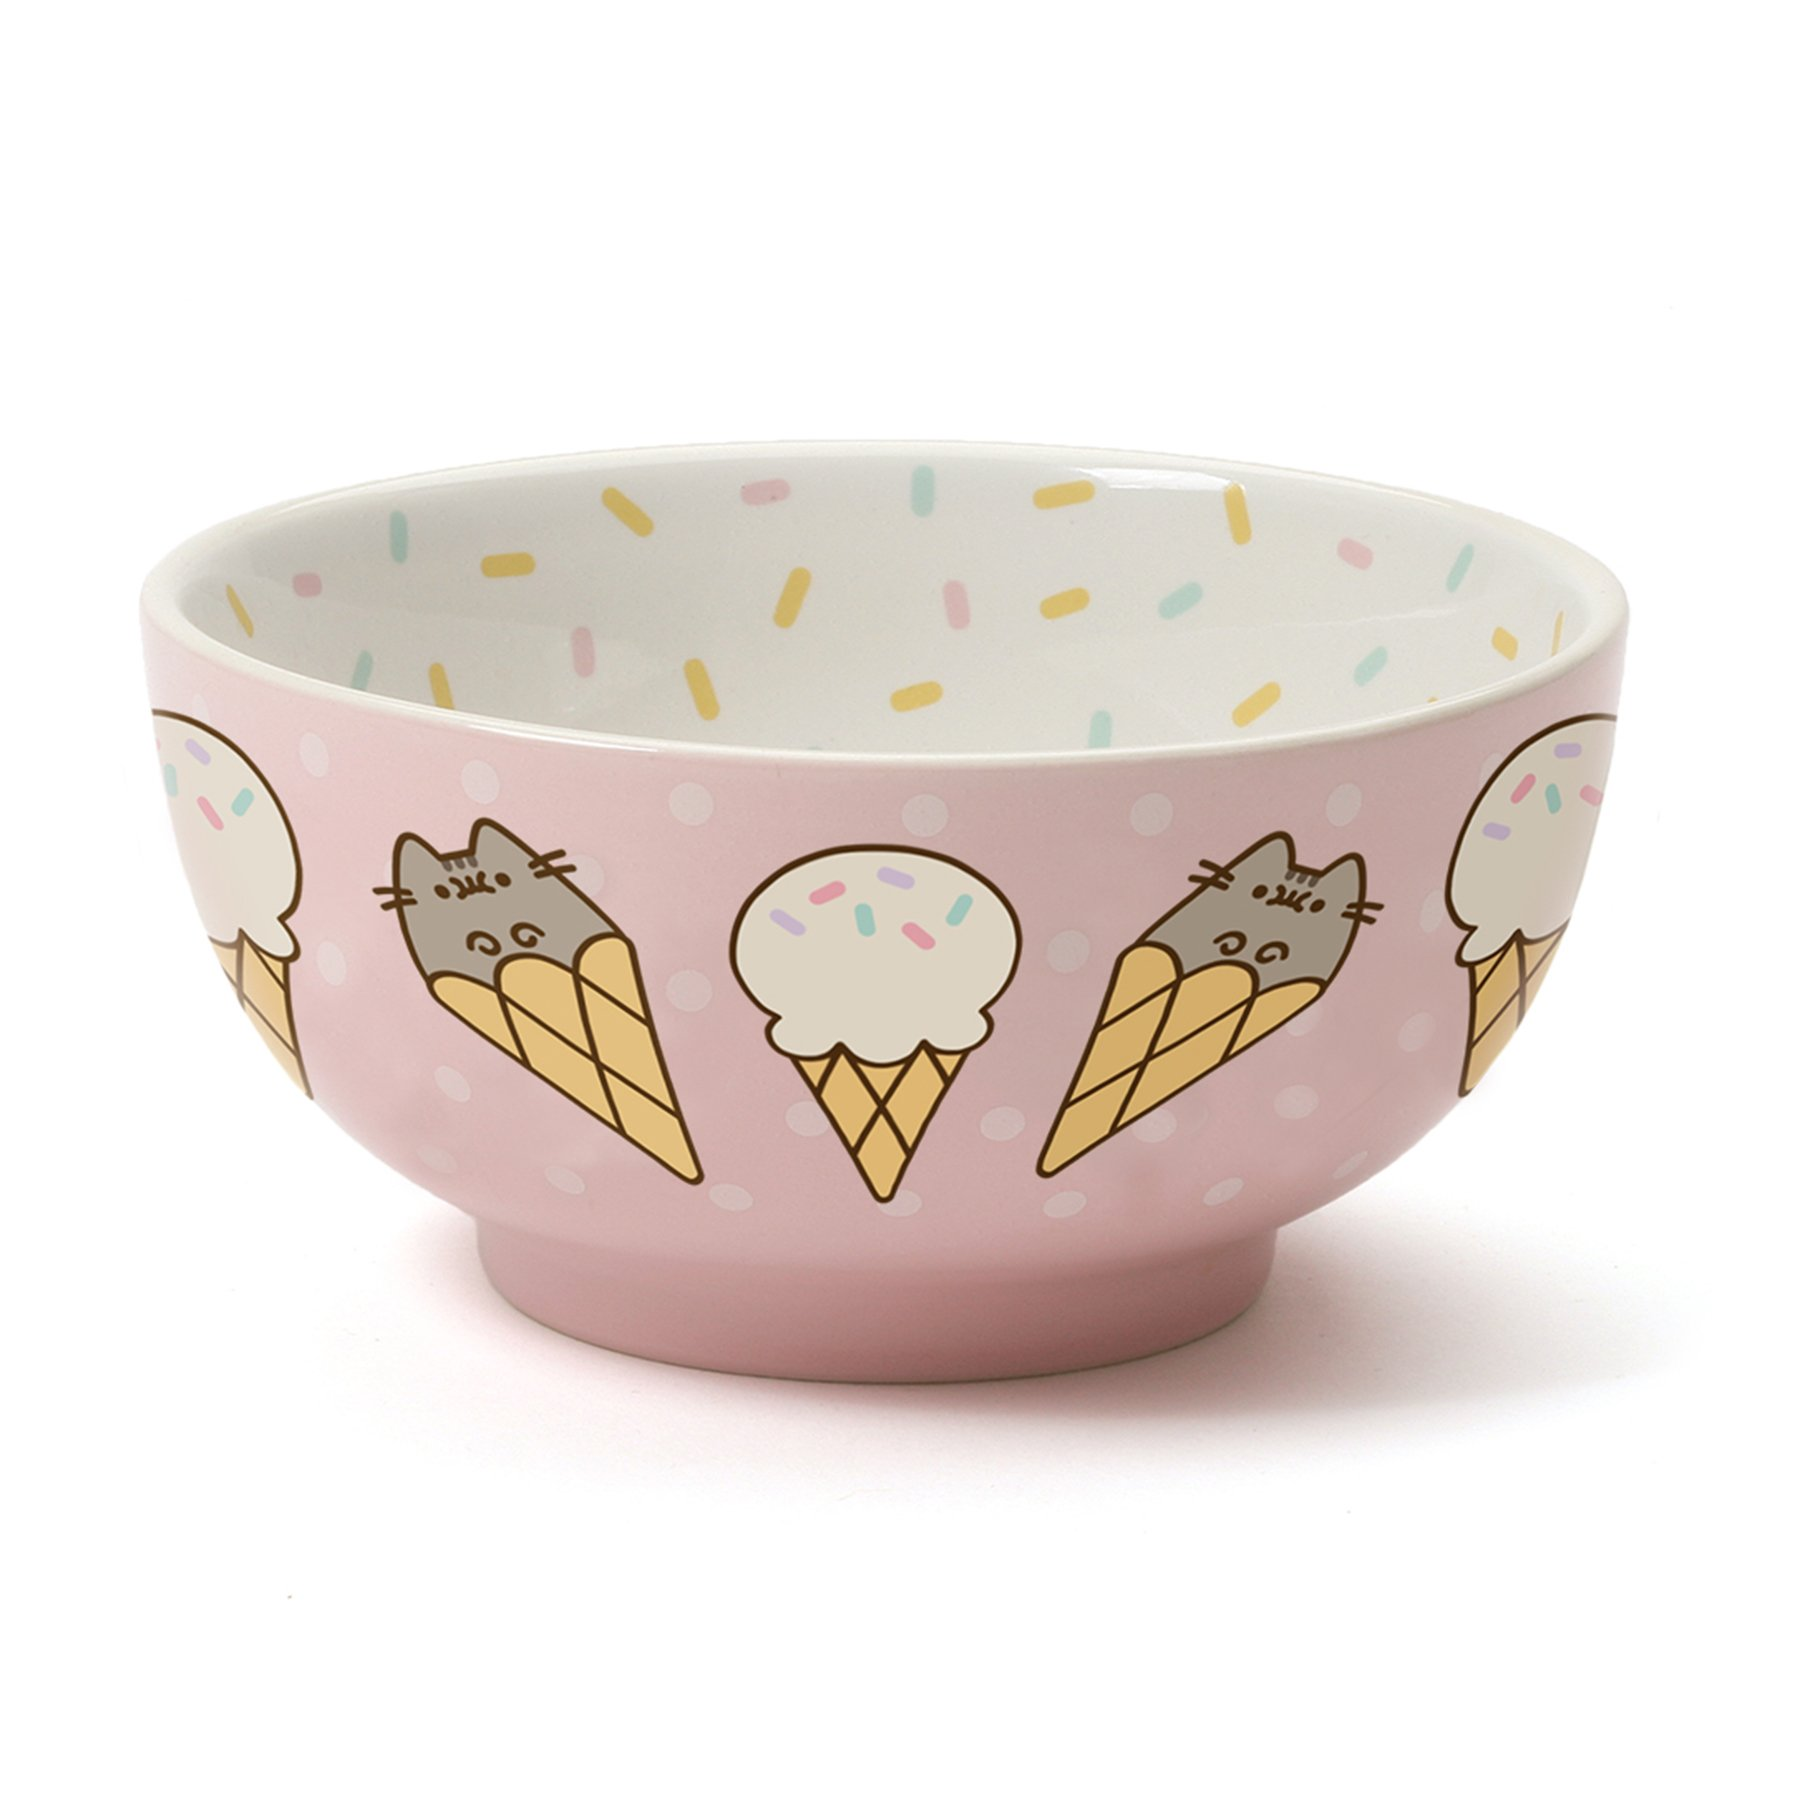 Enesco Pusheen by Our Name is Mud Stoneware Ice Cream Snack Bowl, Pink, 2.625''